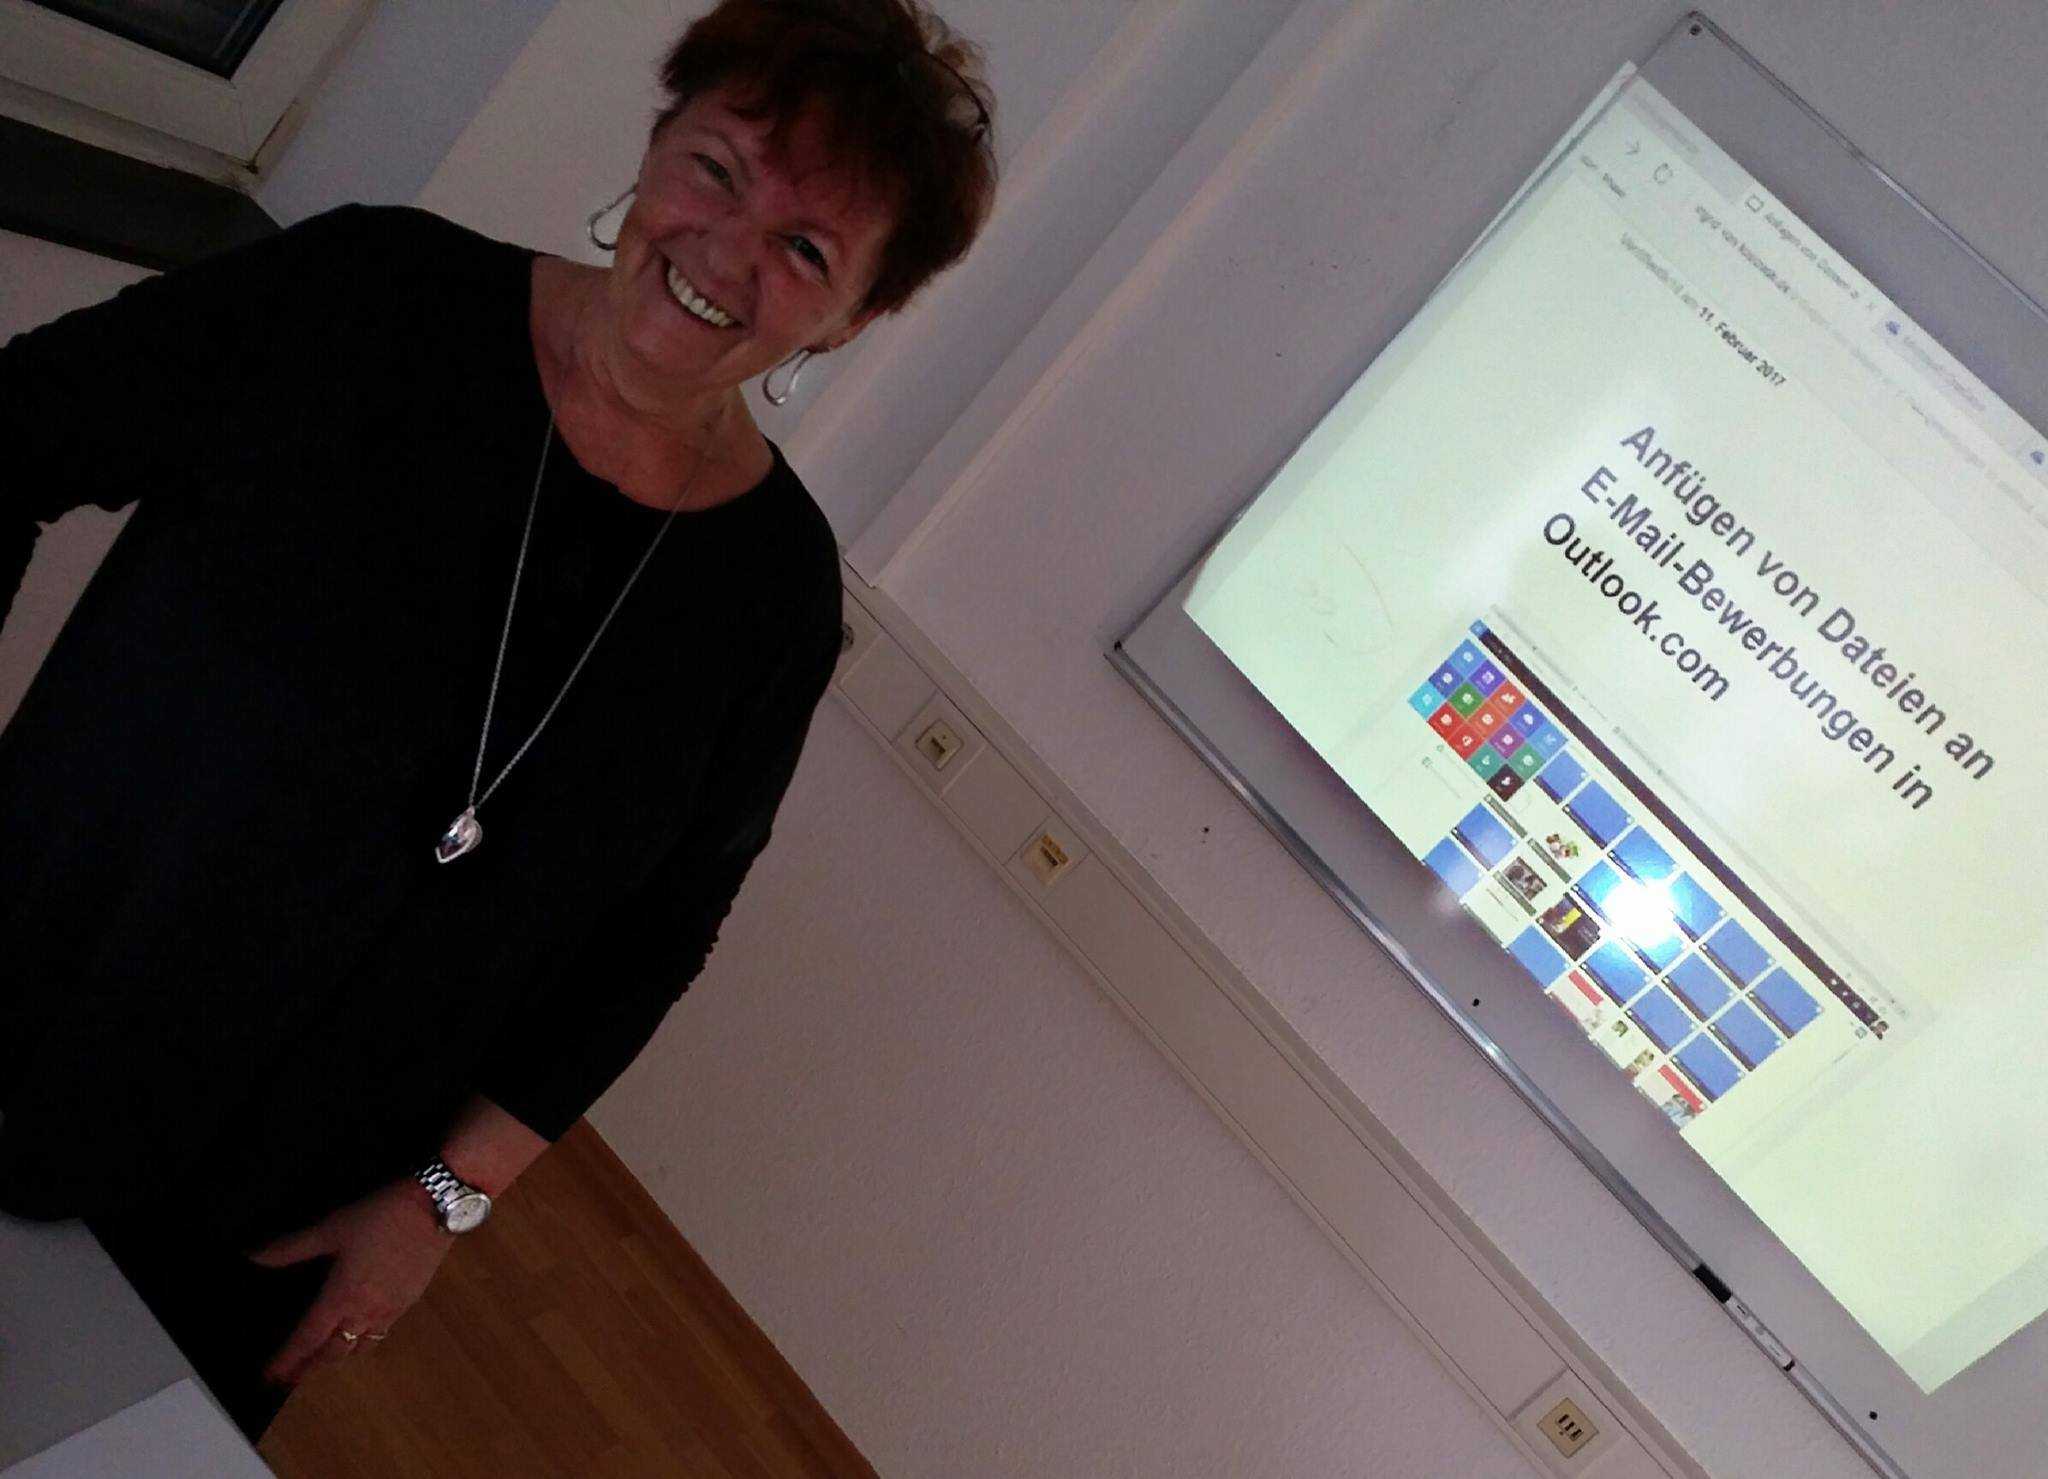 Ingrid Crone - IT Trainer, Dozentin, Job Coach: https://unterricht-am-eigenen-computer.de/